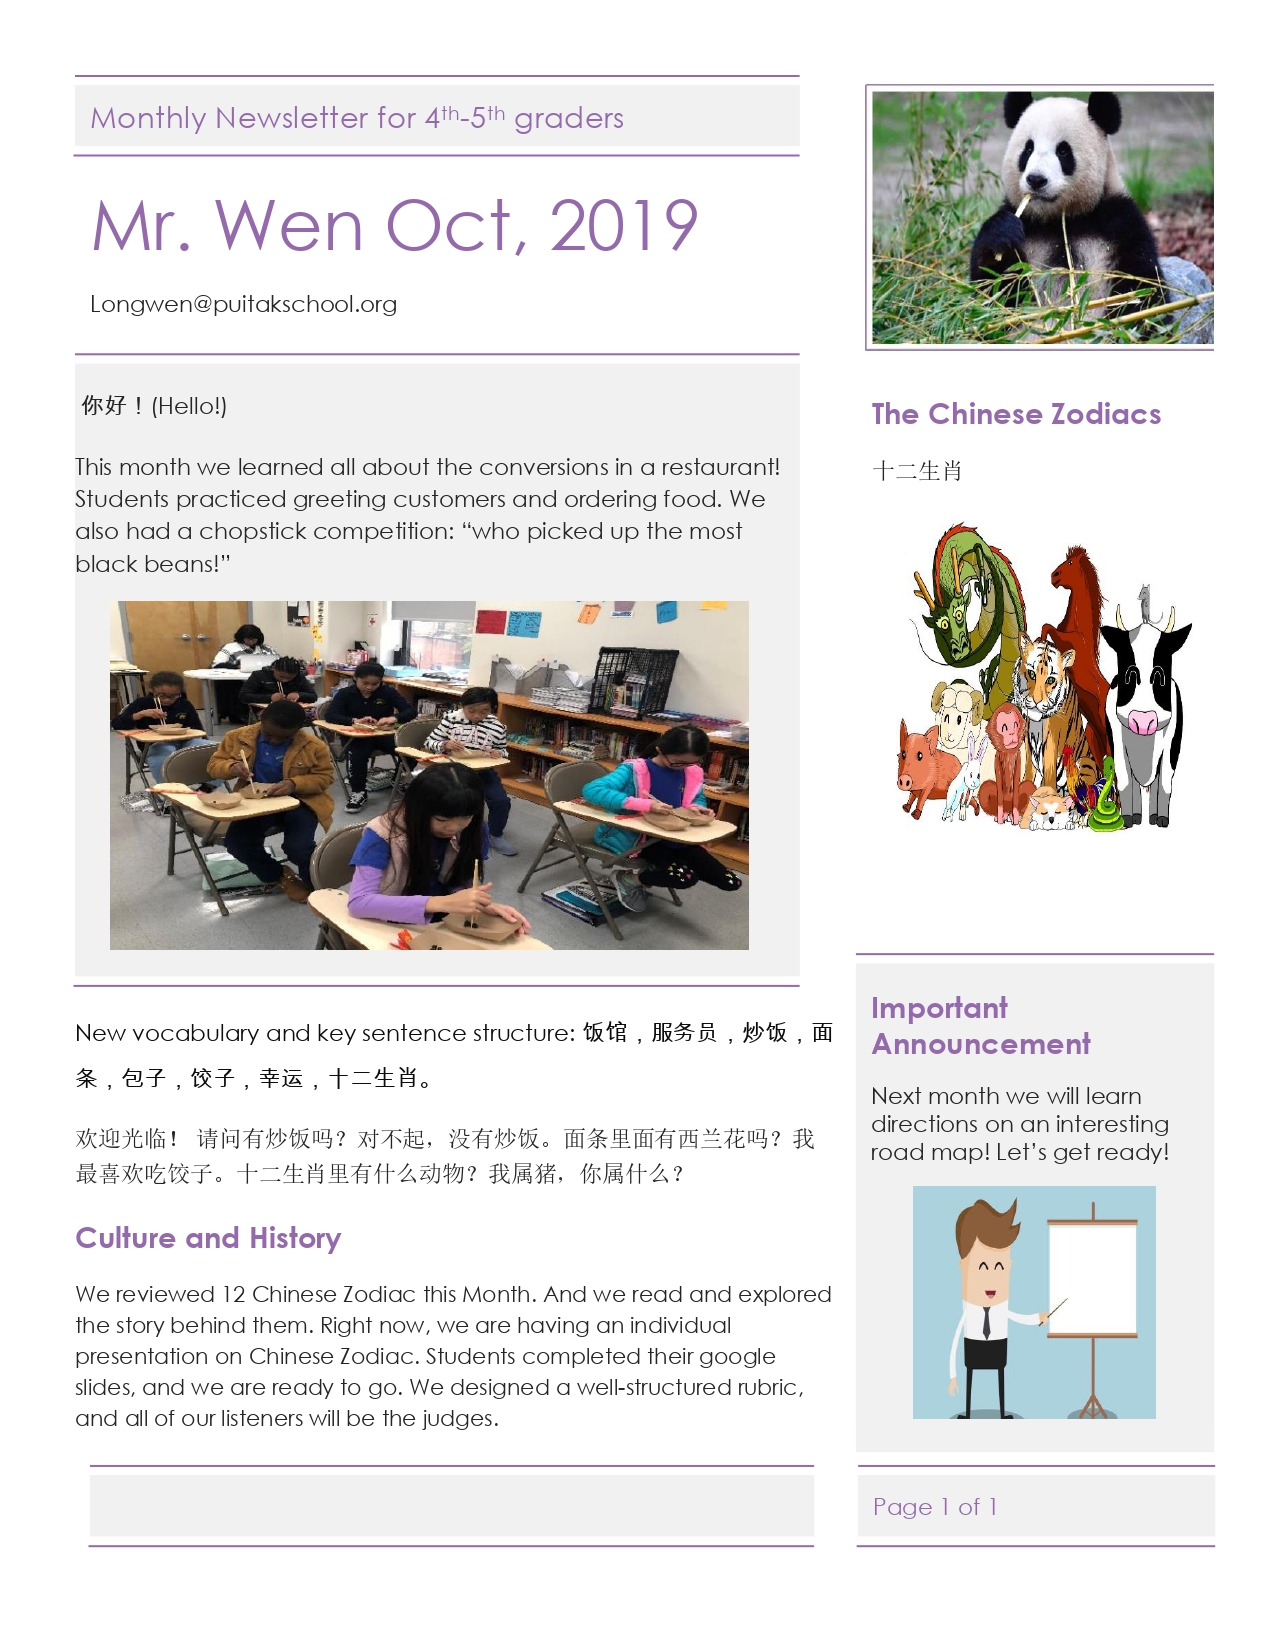 JackNewsletterOctober2019 for 4th-5th gr